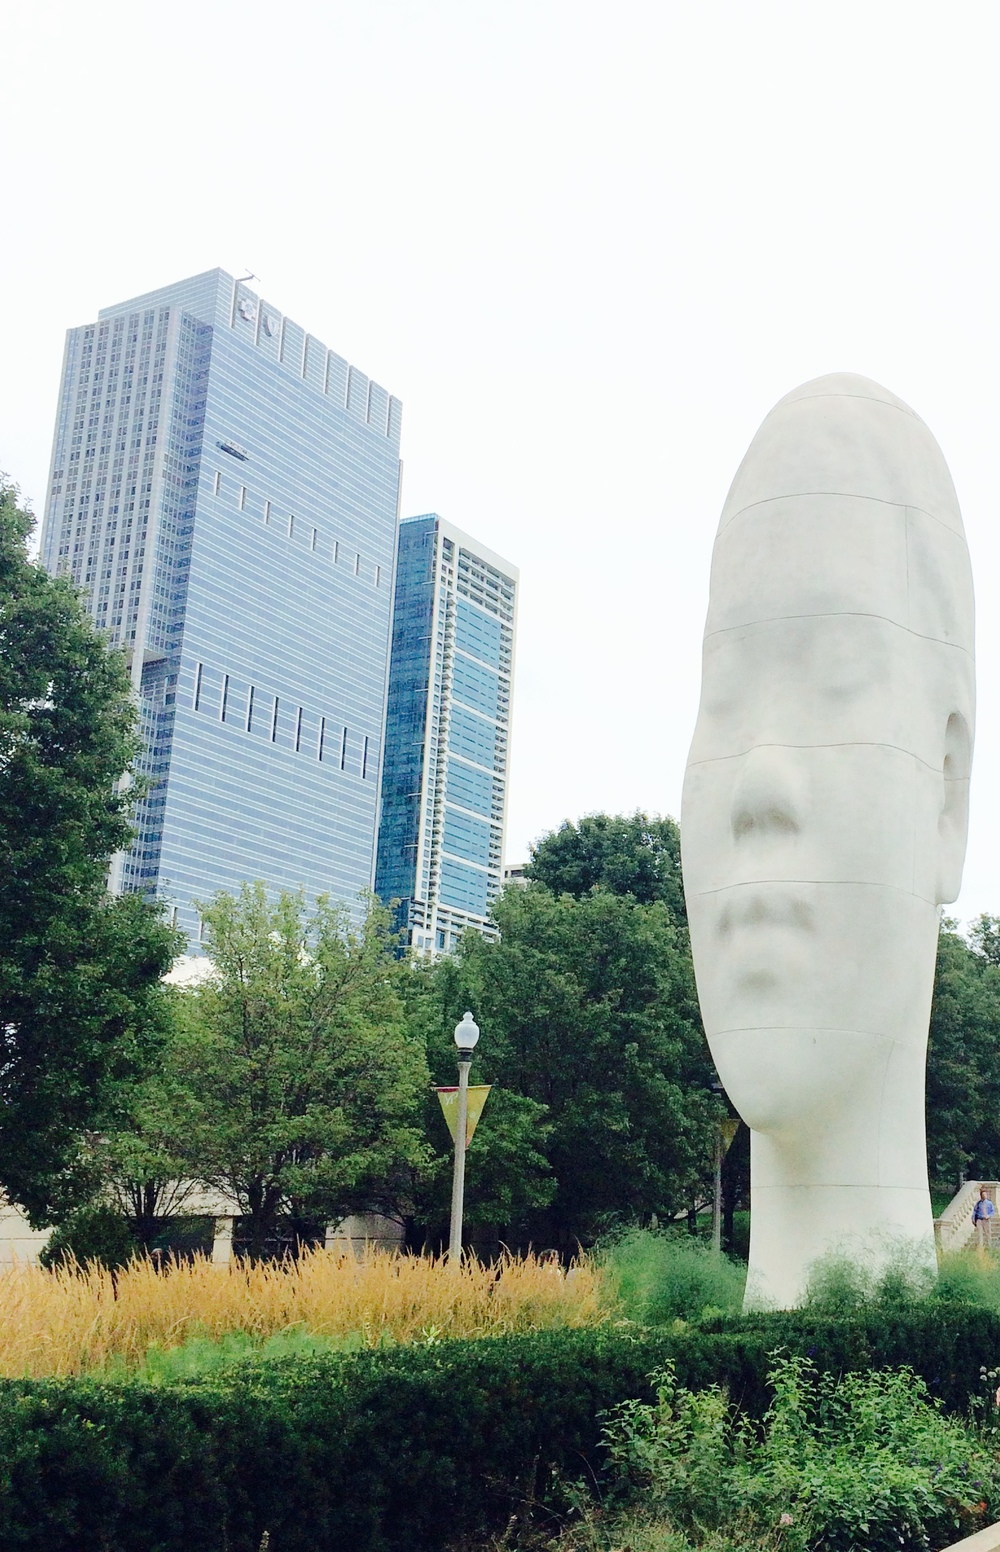 :: funky sculpture & landscaping among modern architecture @ millennium park ::